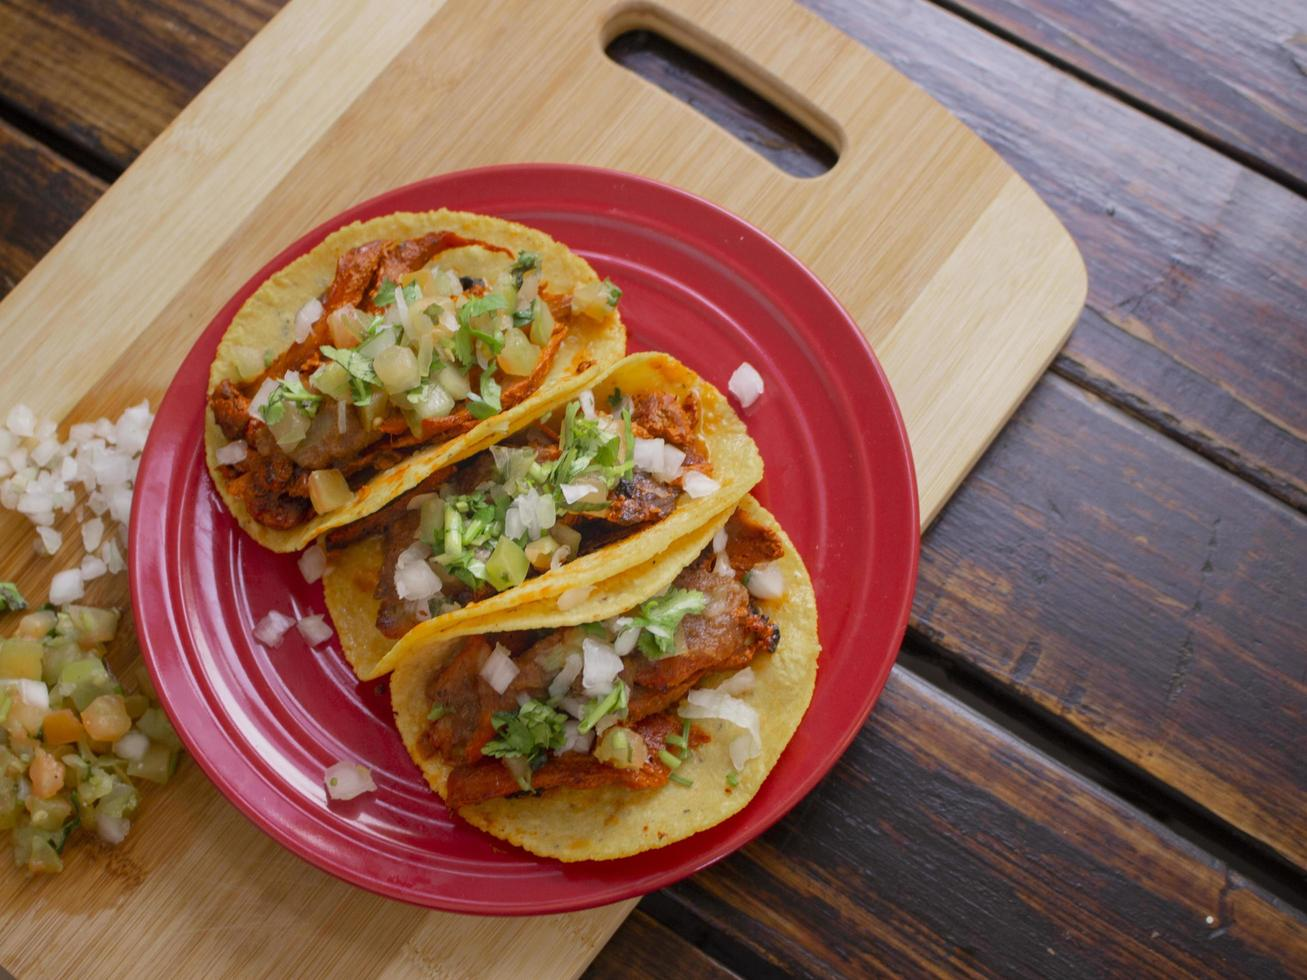 Beef tacos on a red plate photo